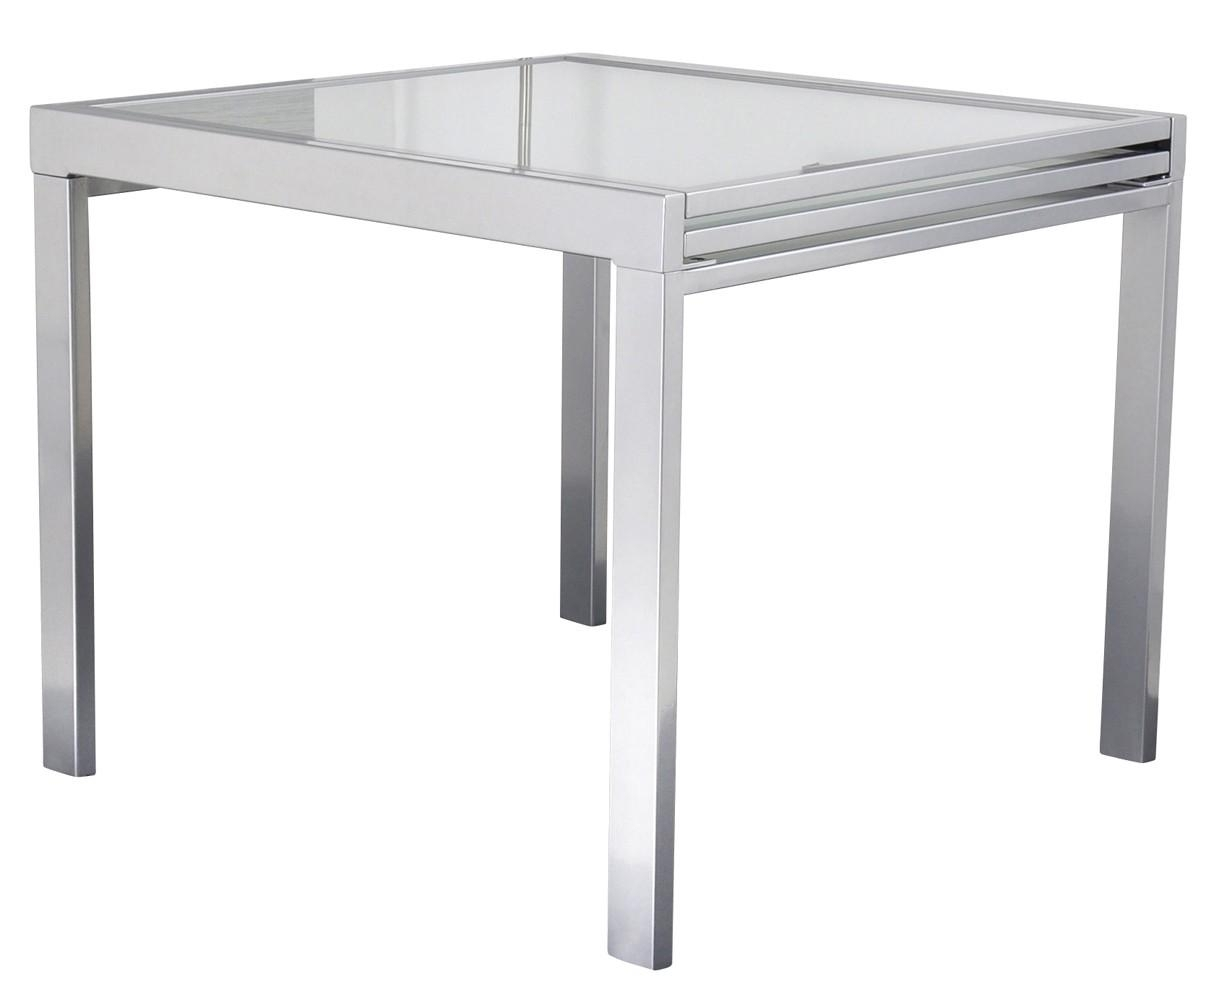 Les tendances table carr e extensible grise for Table extensible carree